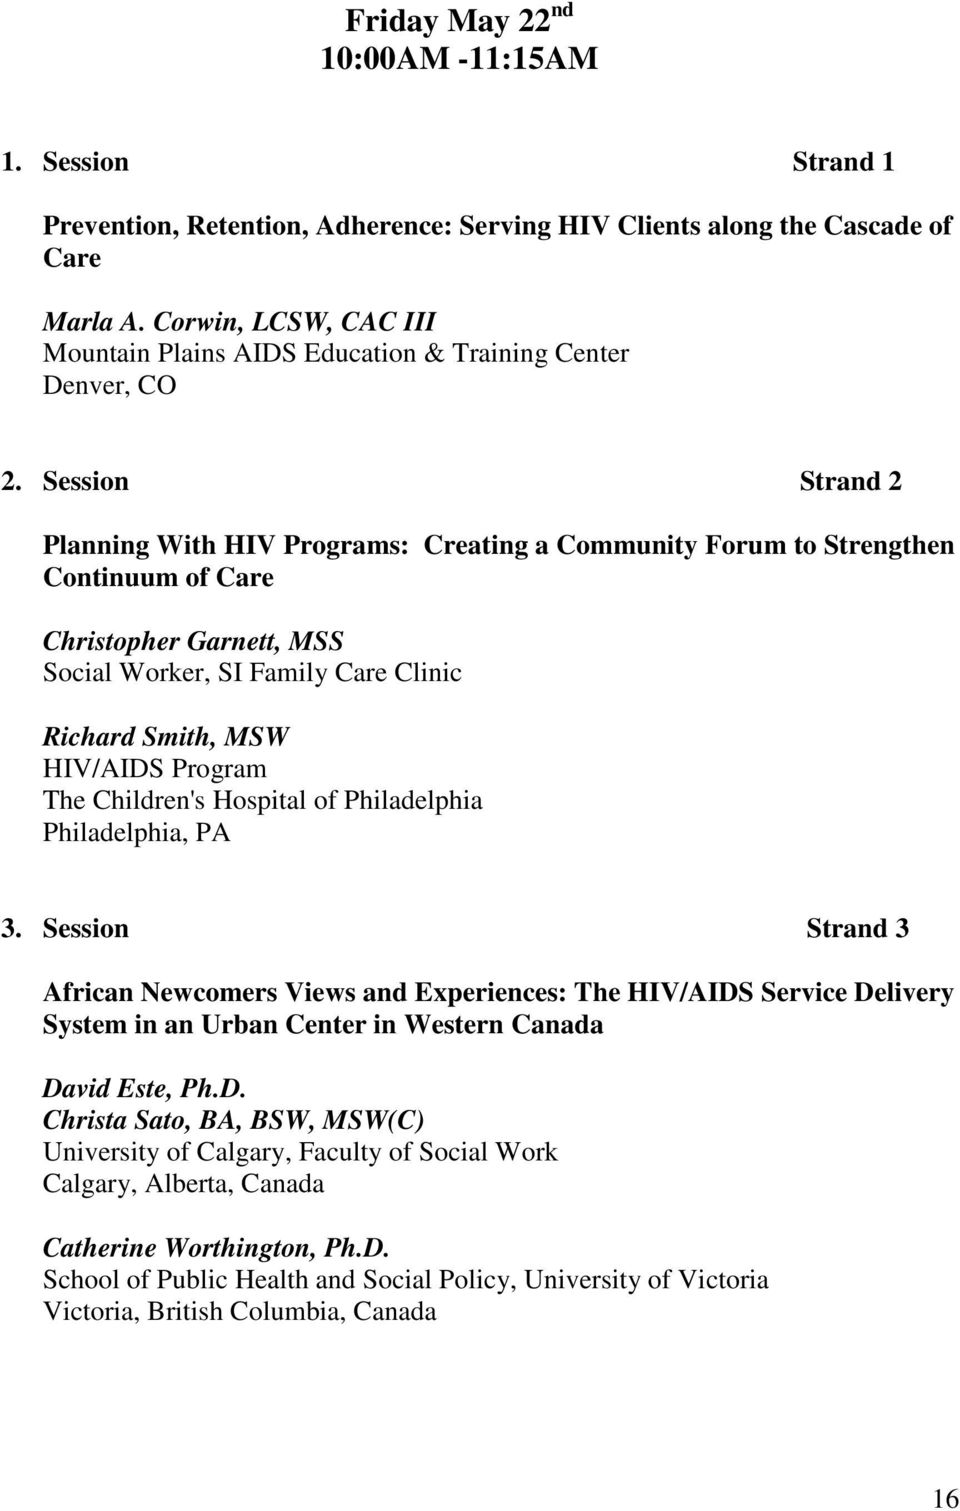 Session Strand 2 Planning With HIV Programs: Creating a Community Forum to Strengthen Continuum of Care Christopher Garnett, MSS Social Worker, SI Family Care Clinic Richard Smith, MSW HIV/AIDS